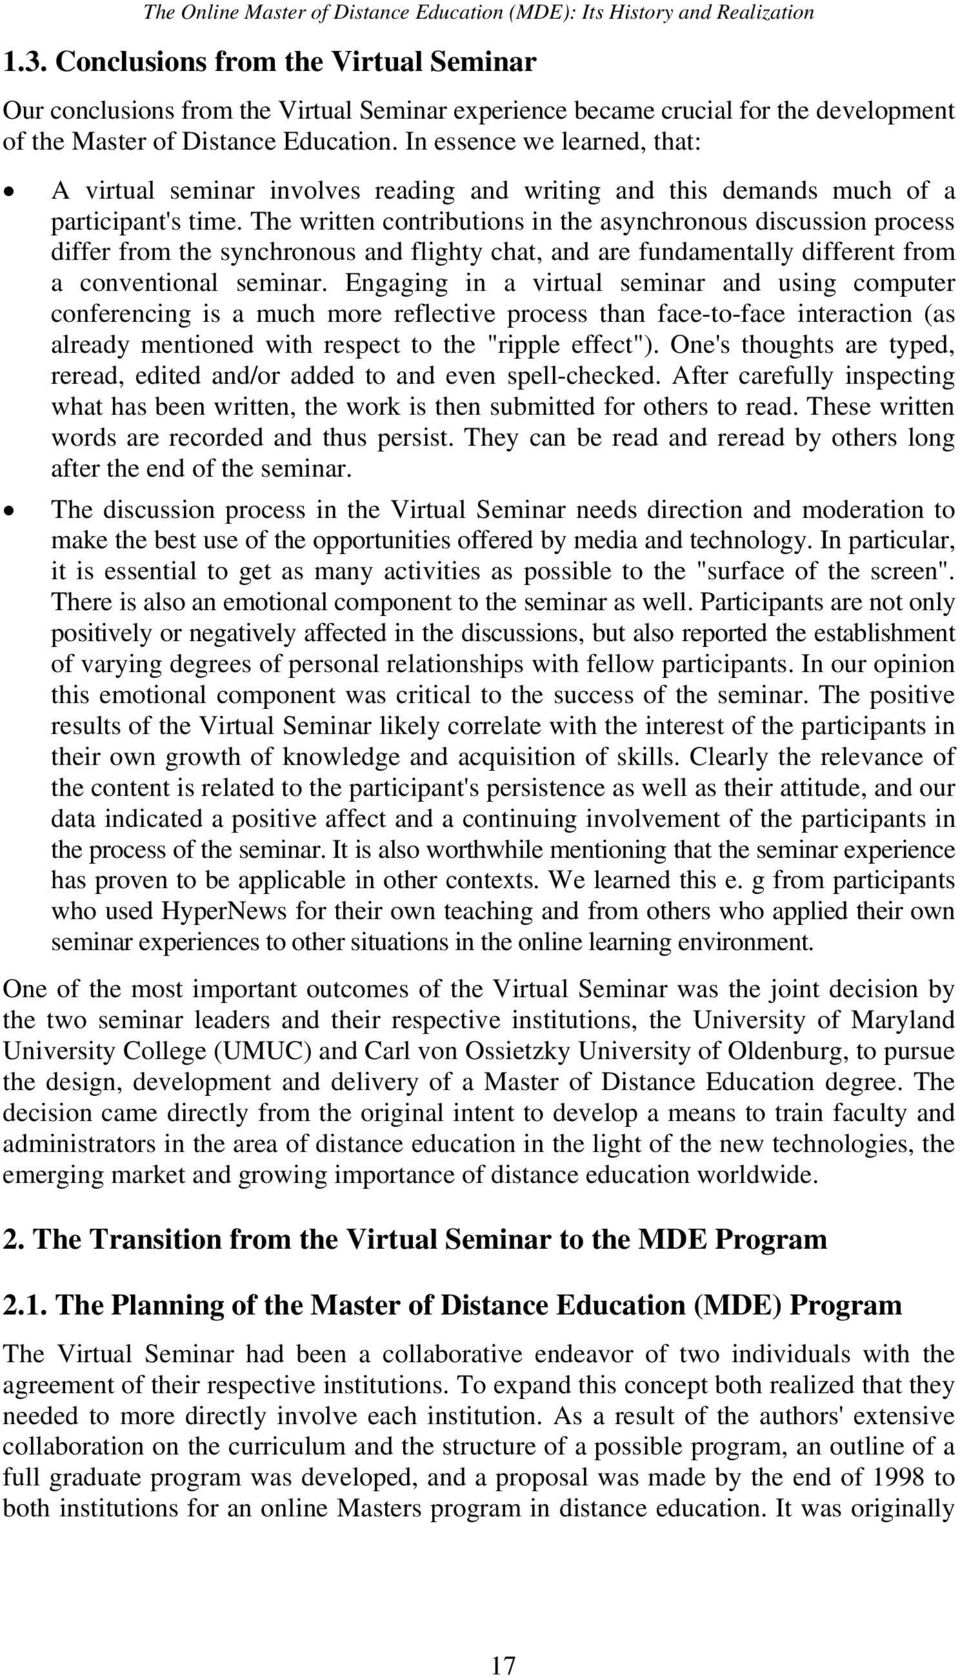 In essence we learned, that: A virtual seminar involves reading and writing and this demands much of a participant's time.